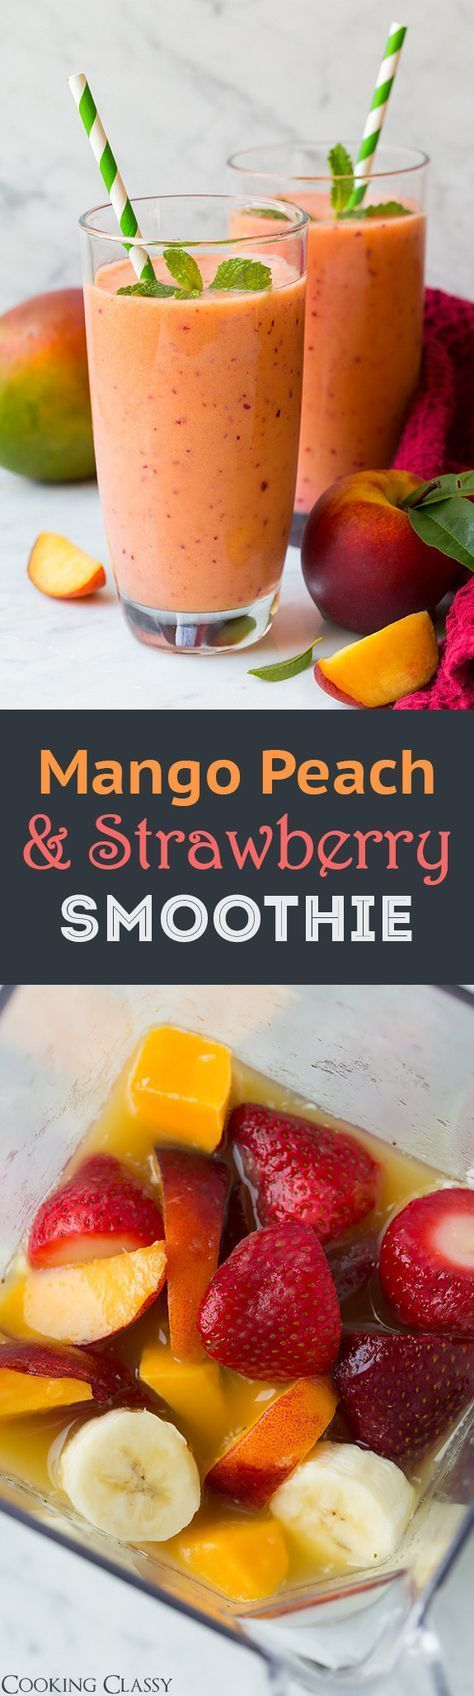 Mango Peach and Strawberry Smoothie